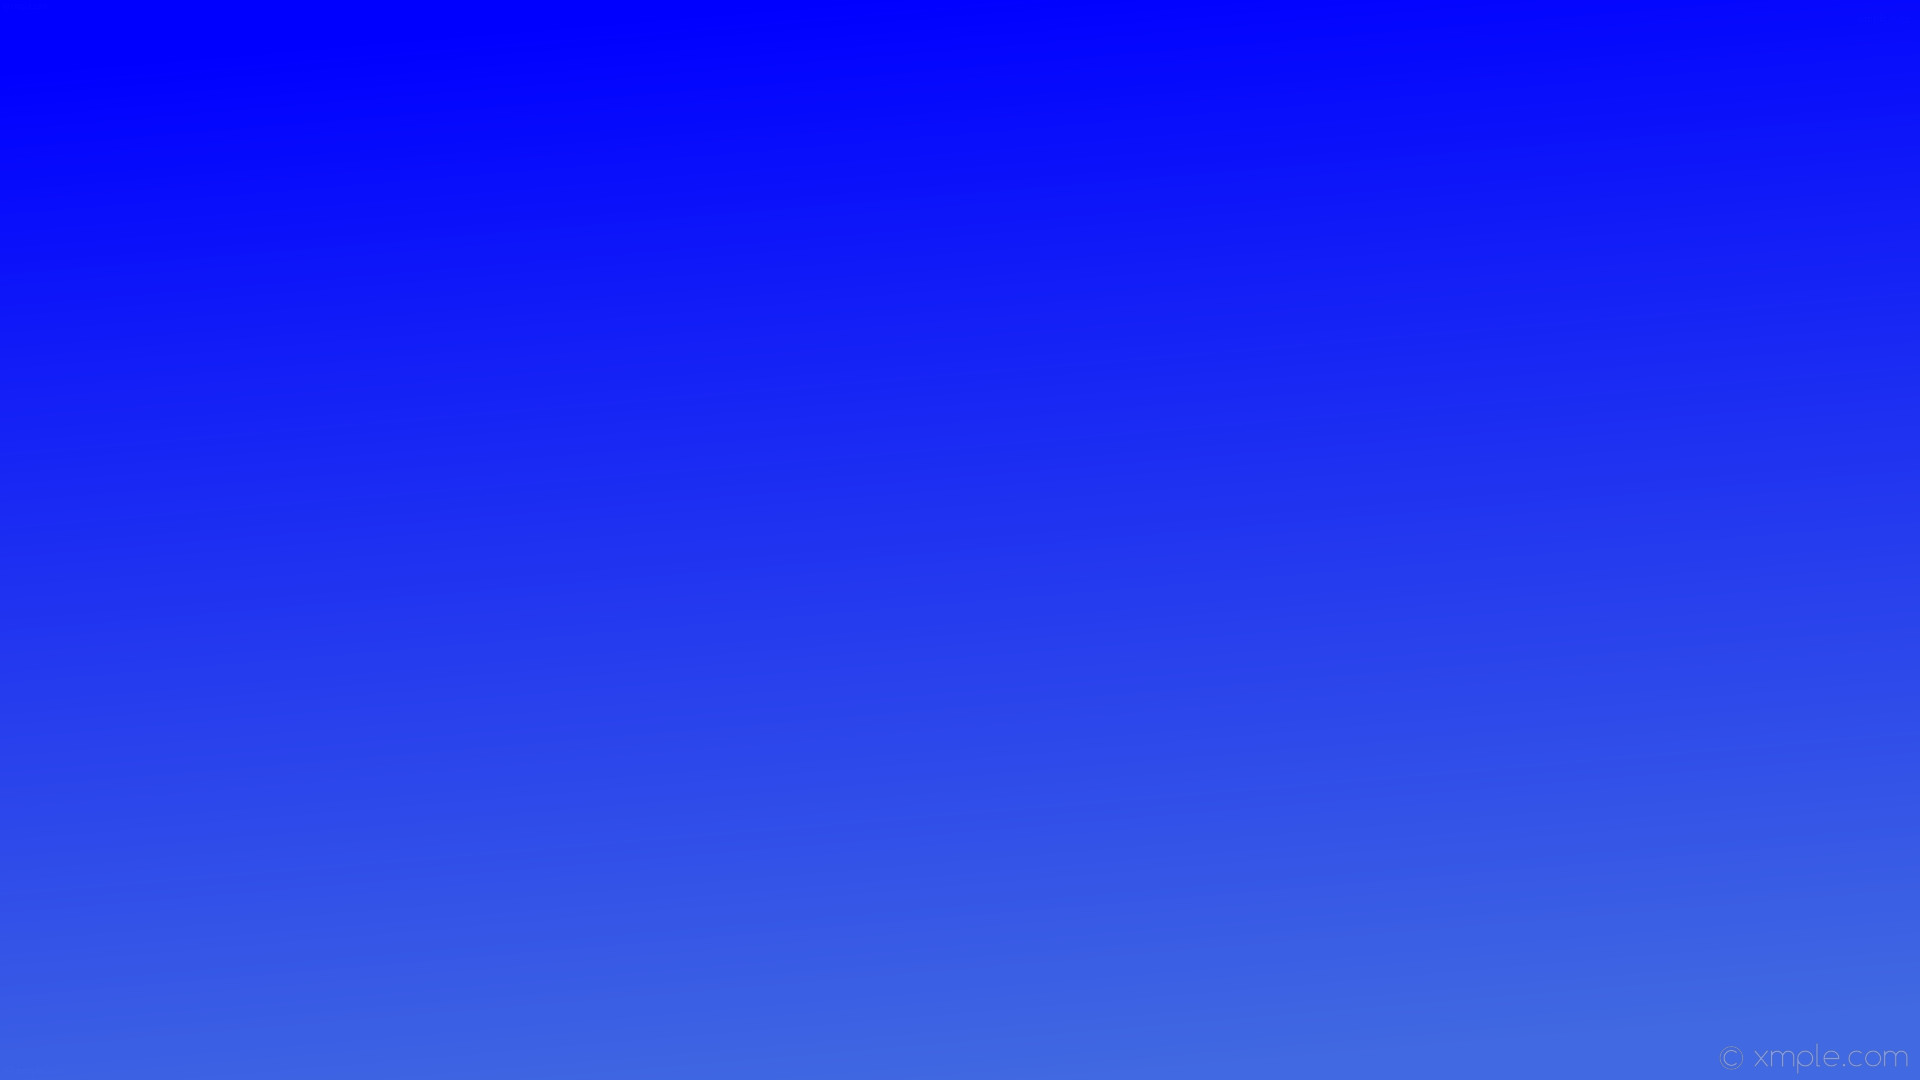 1920x1080 wallpaper linear gradient blue royal blue #0000ff #4169e1 105°